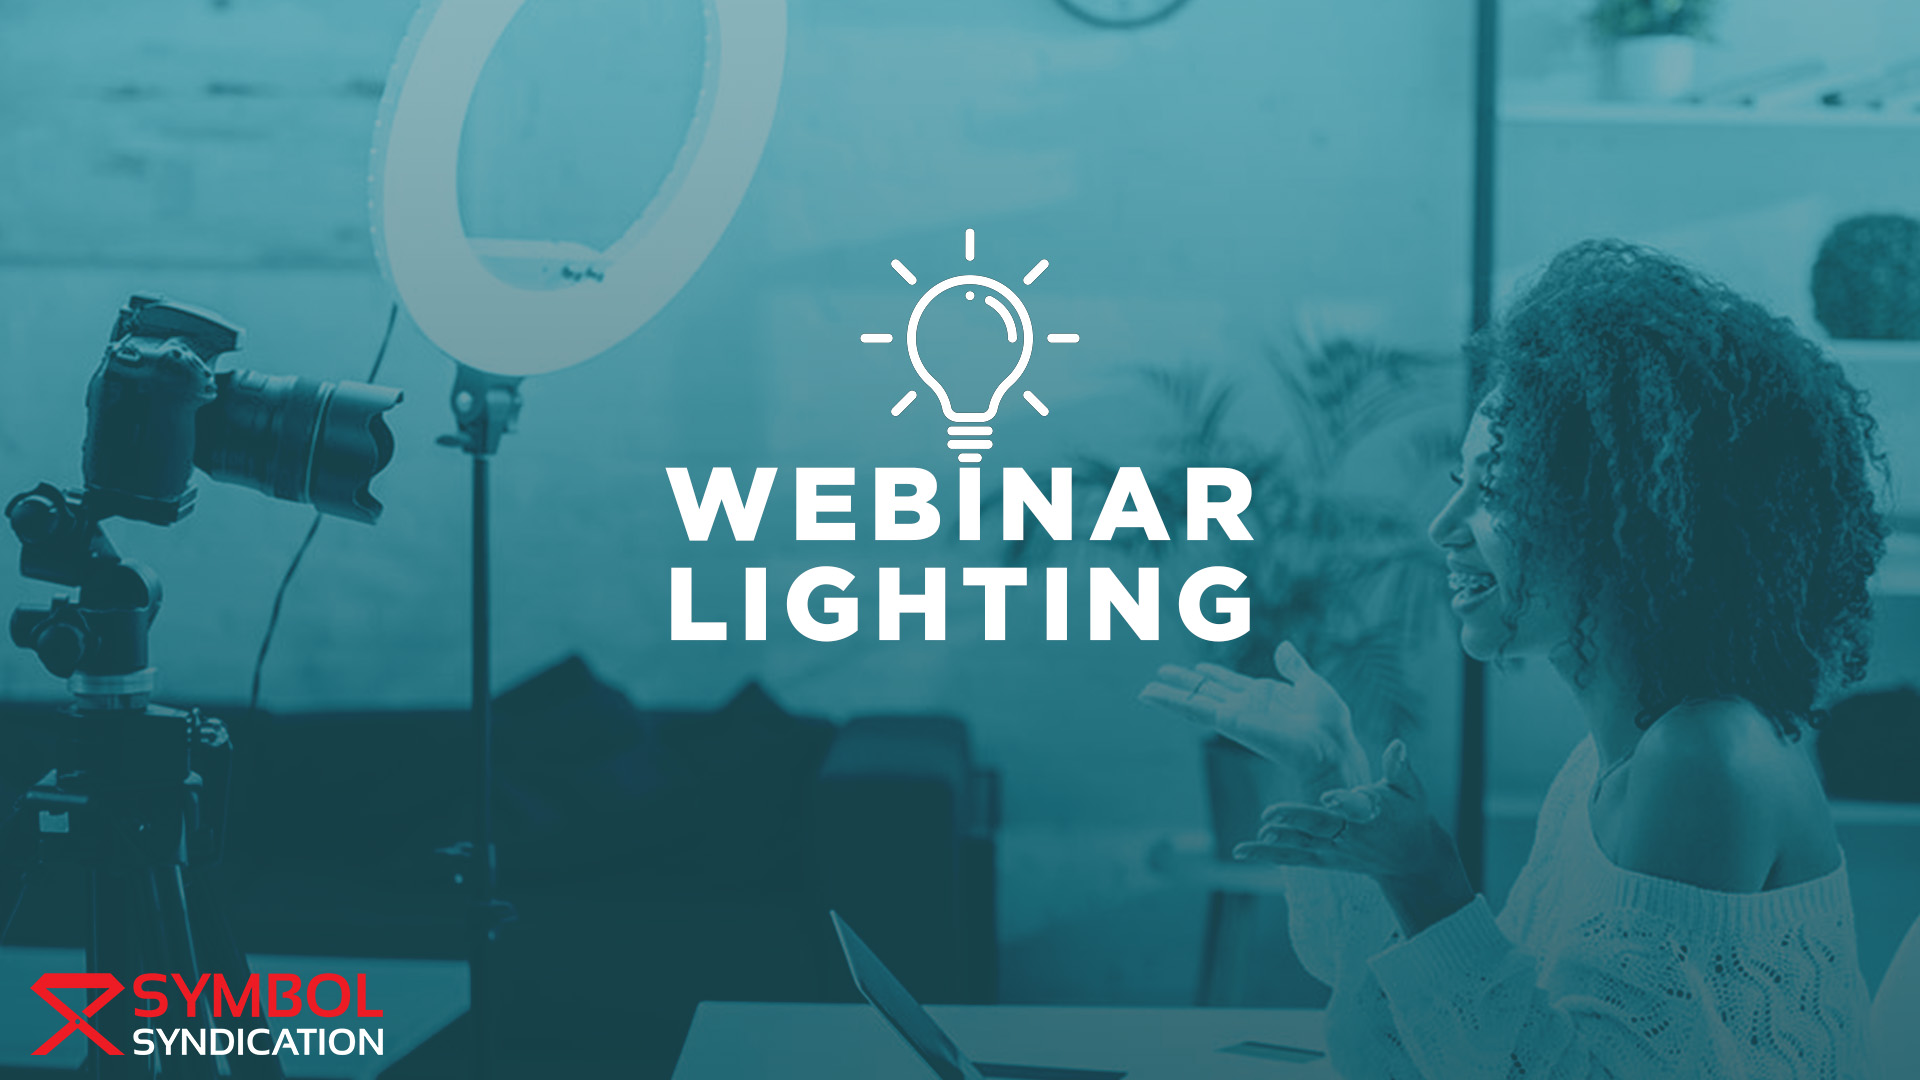 Webinar Lighting Banner